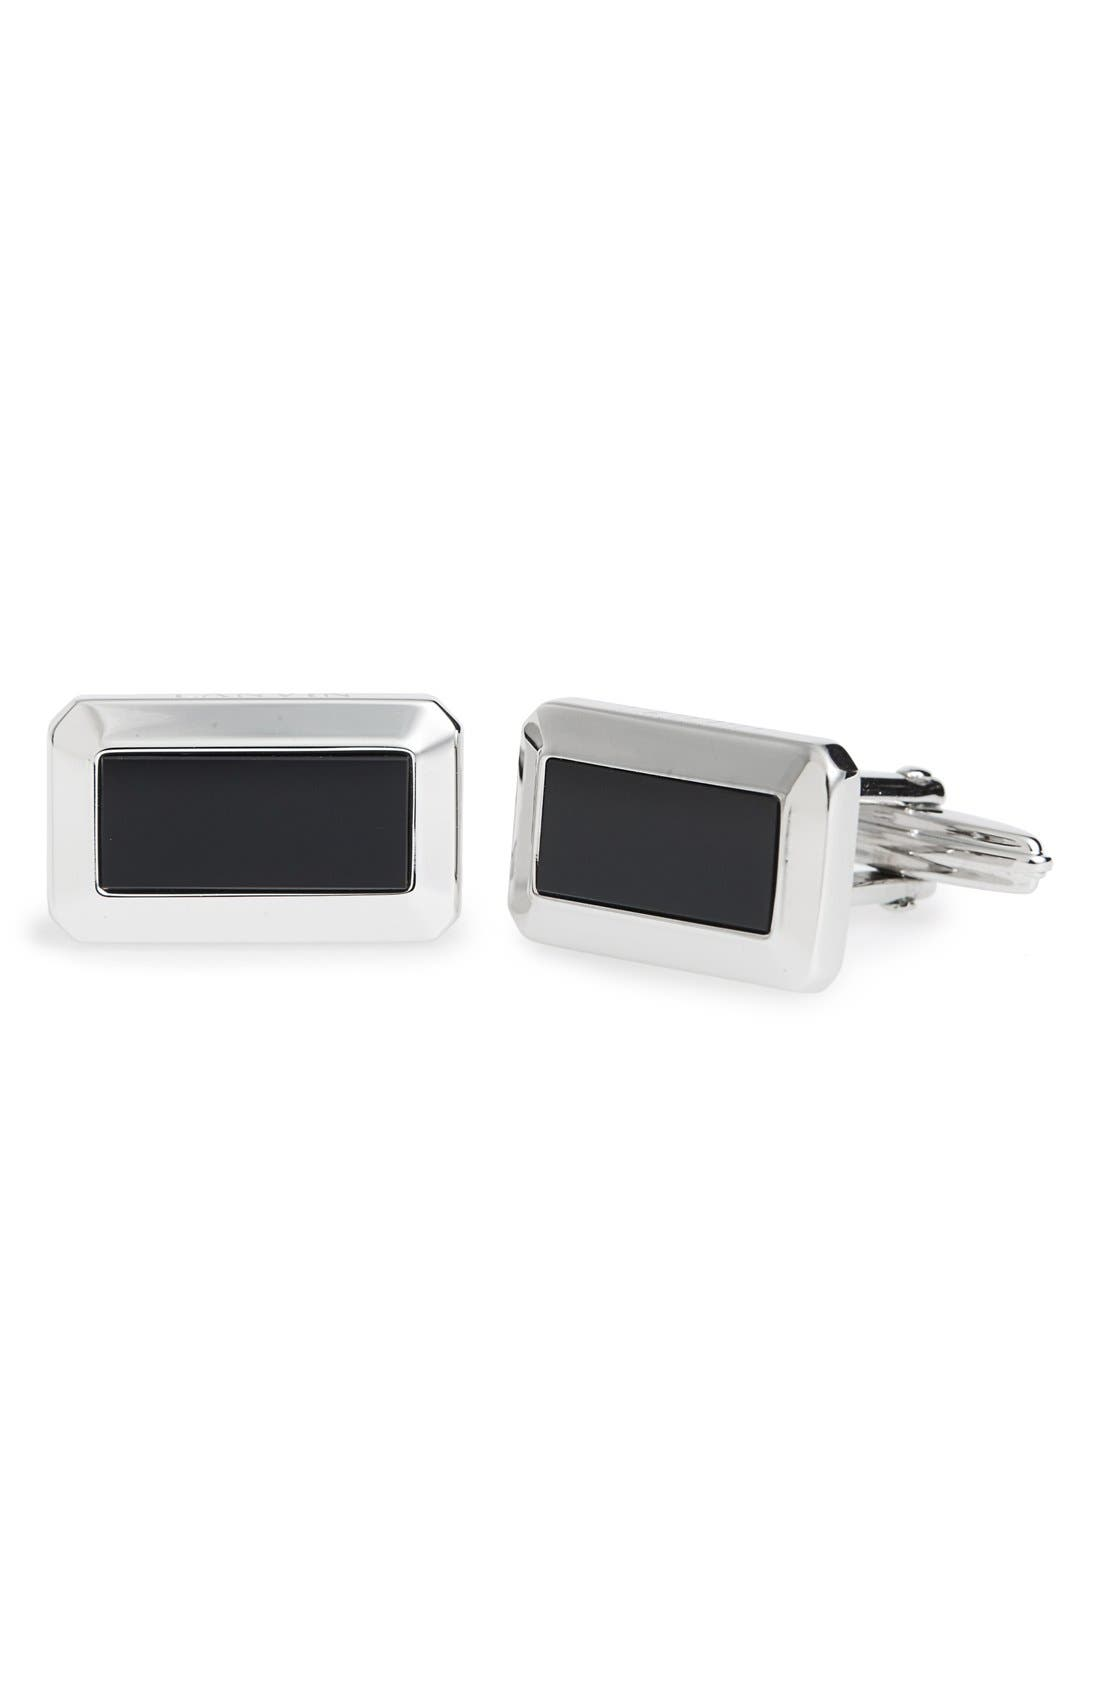 Onyx Inset Rectangular Cuff Links,                             Main thumbnail 1, color,                             SILVER/ BLACK